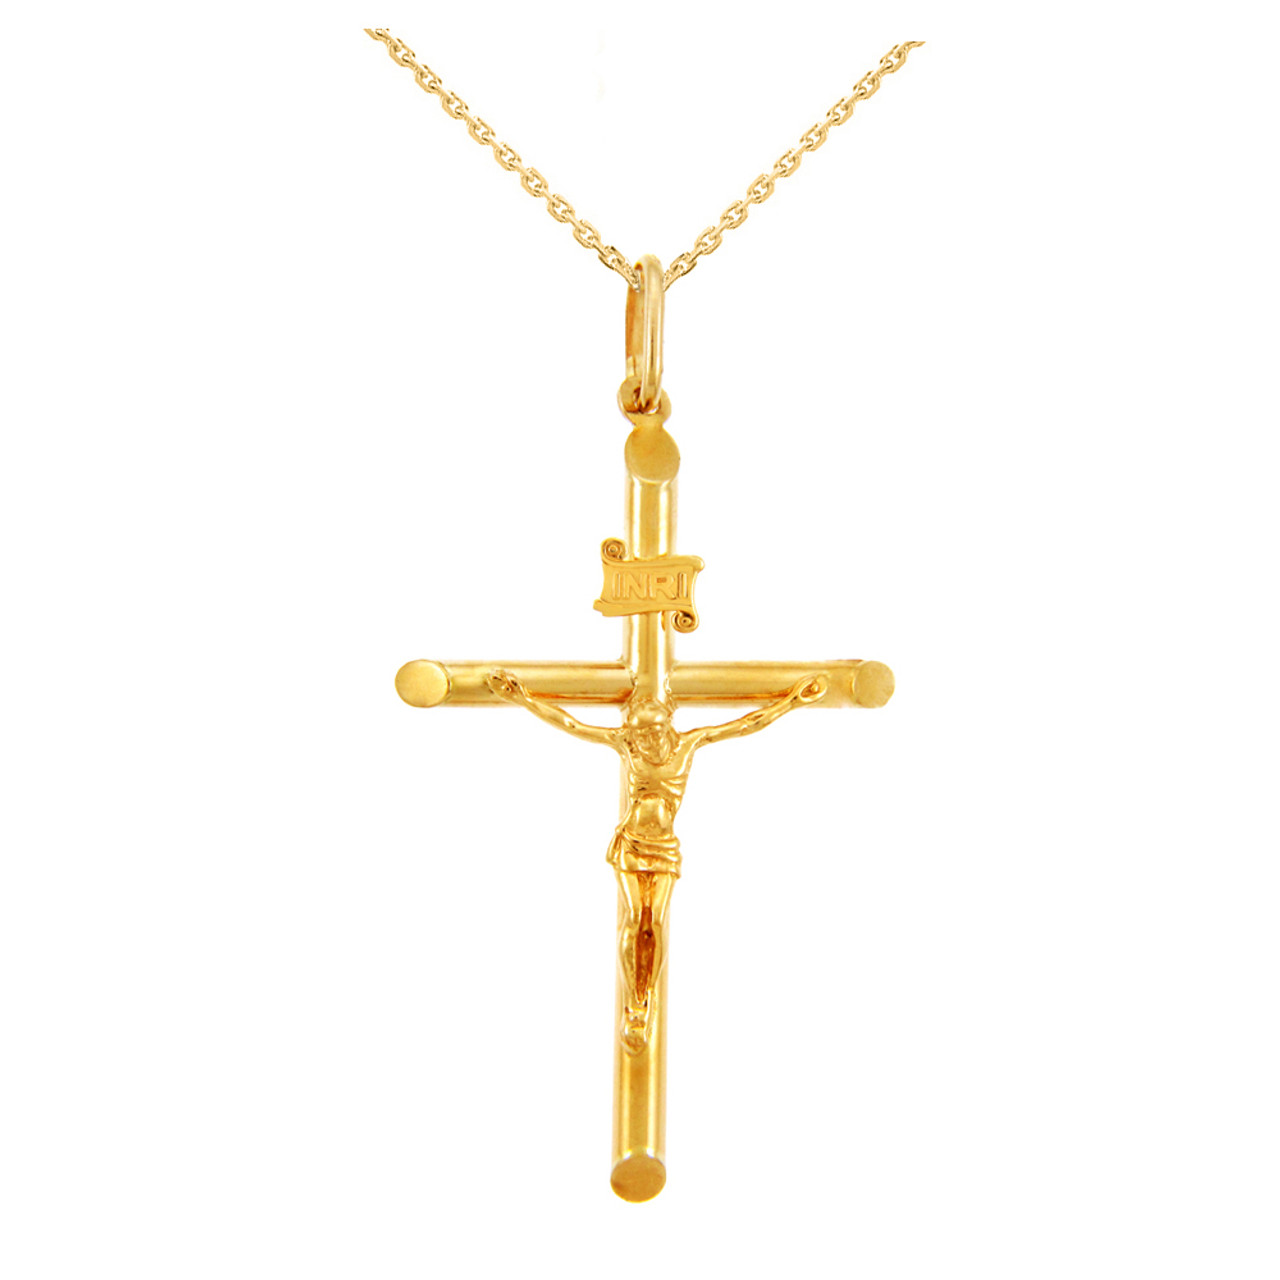 christian jesus wholesale plated catholic double men pendant necklace long gold charm rosary religious bead product